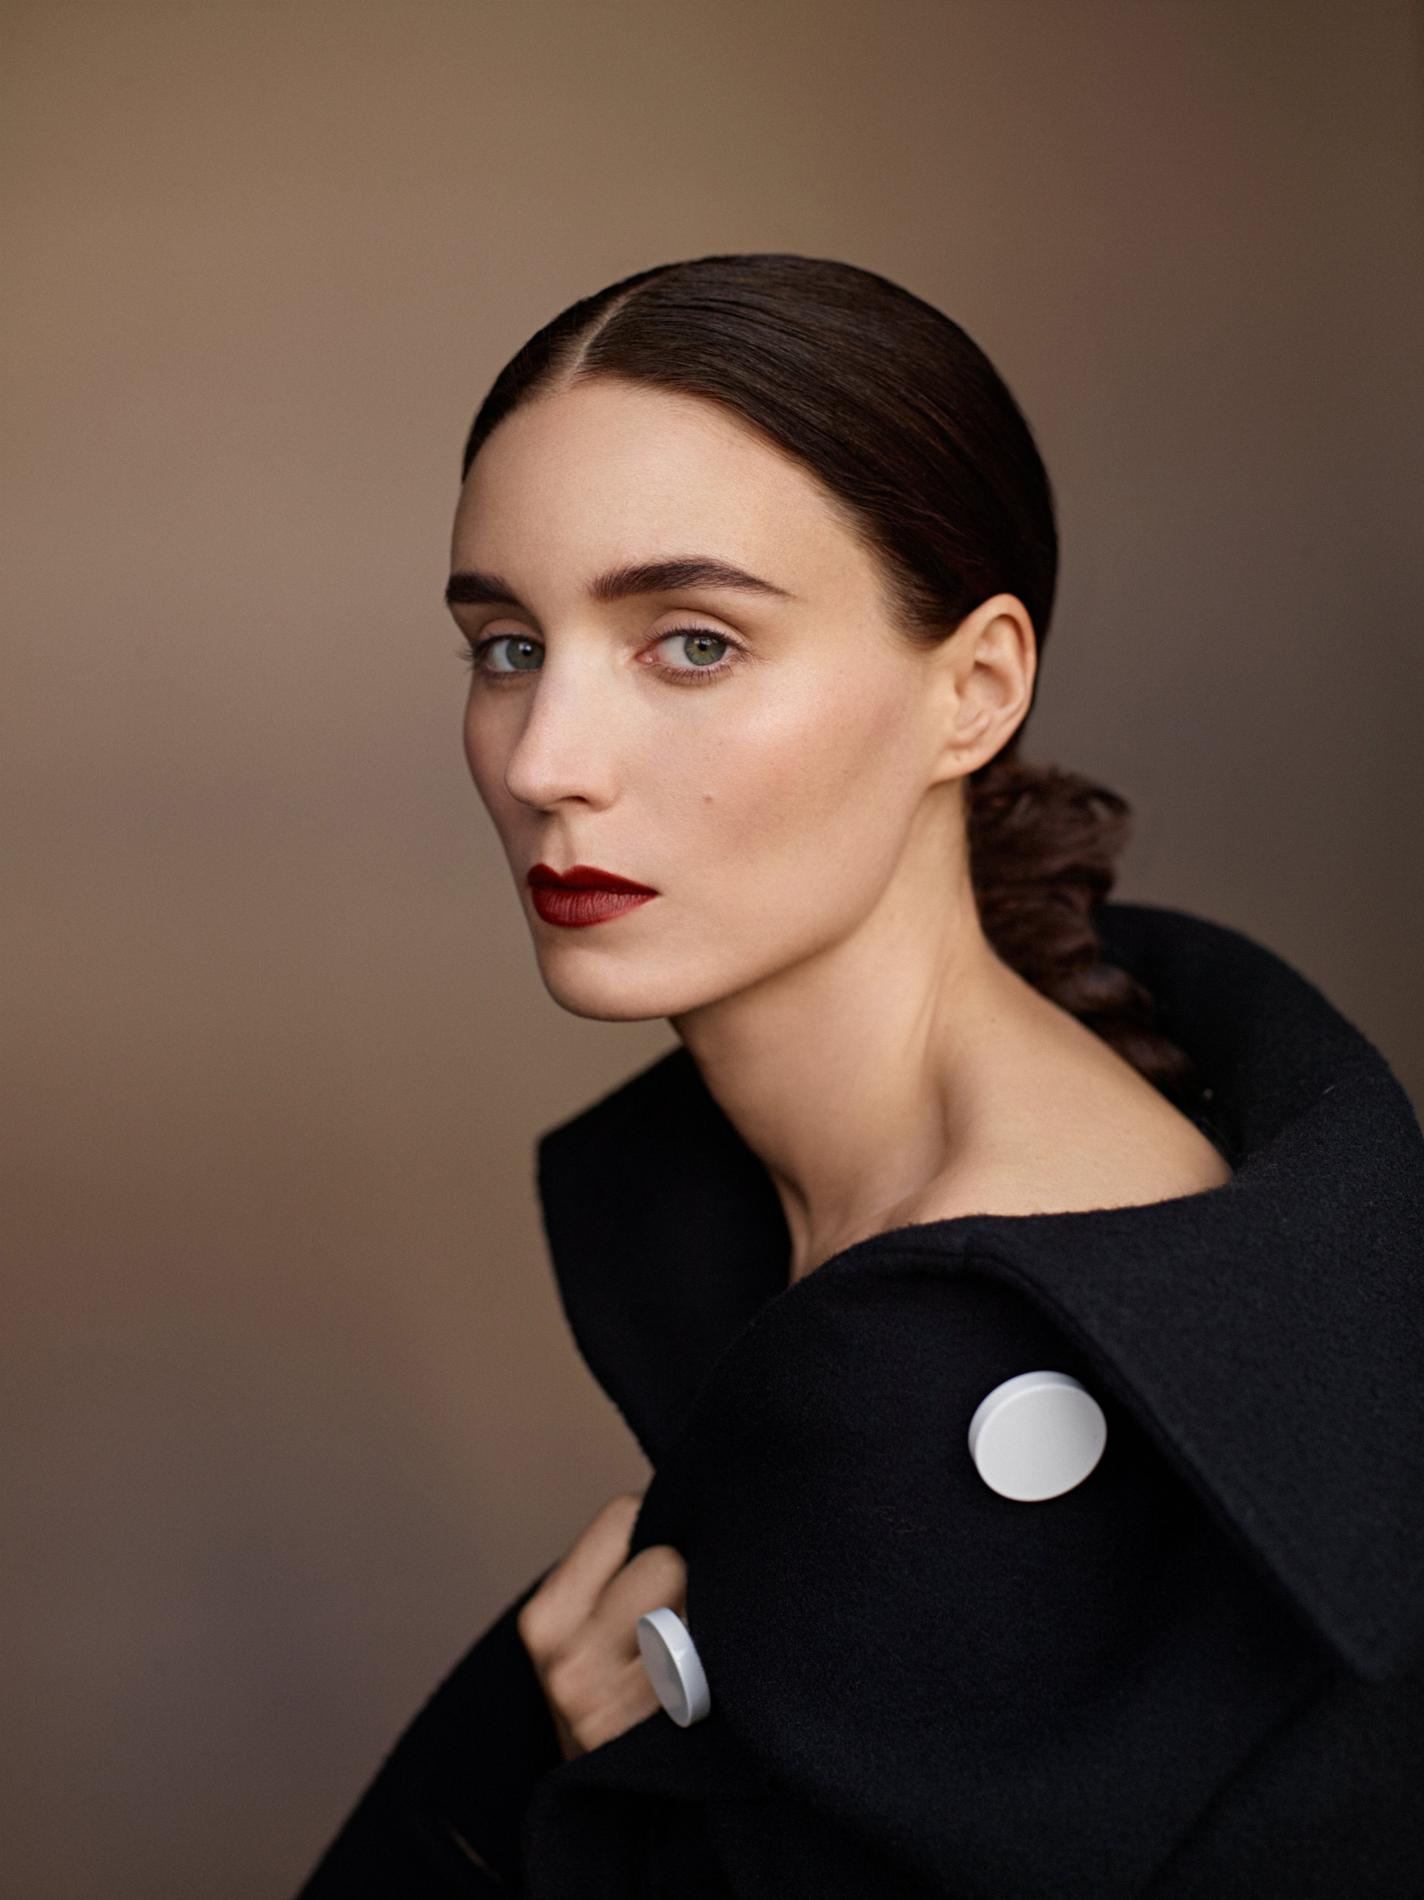 Pics Rooney Mara nude (24 foto and video), Pussy, Hot, Selfie, braless 2006